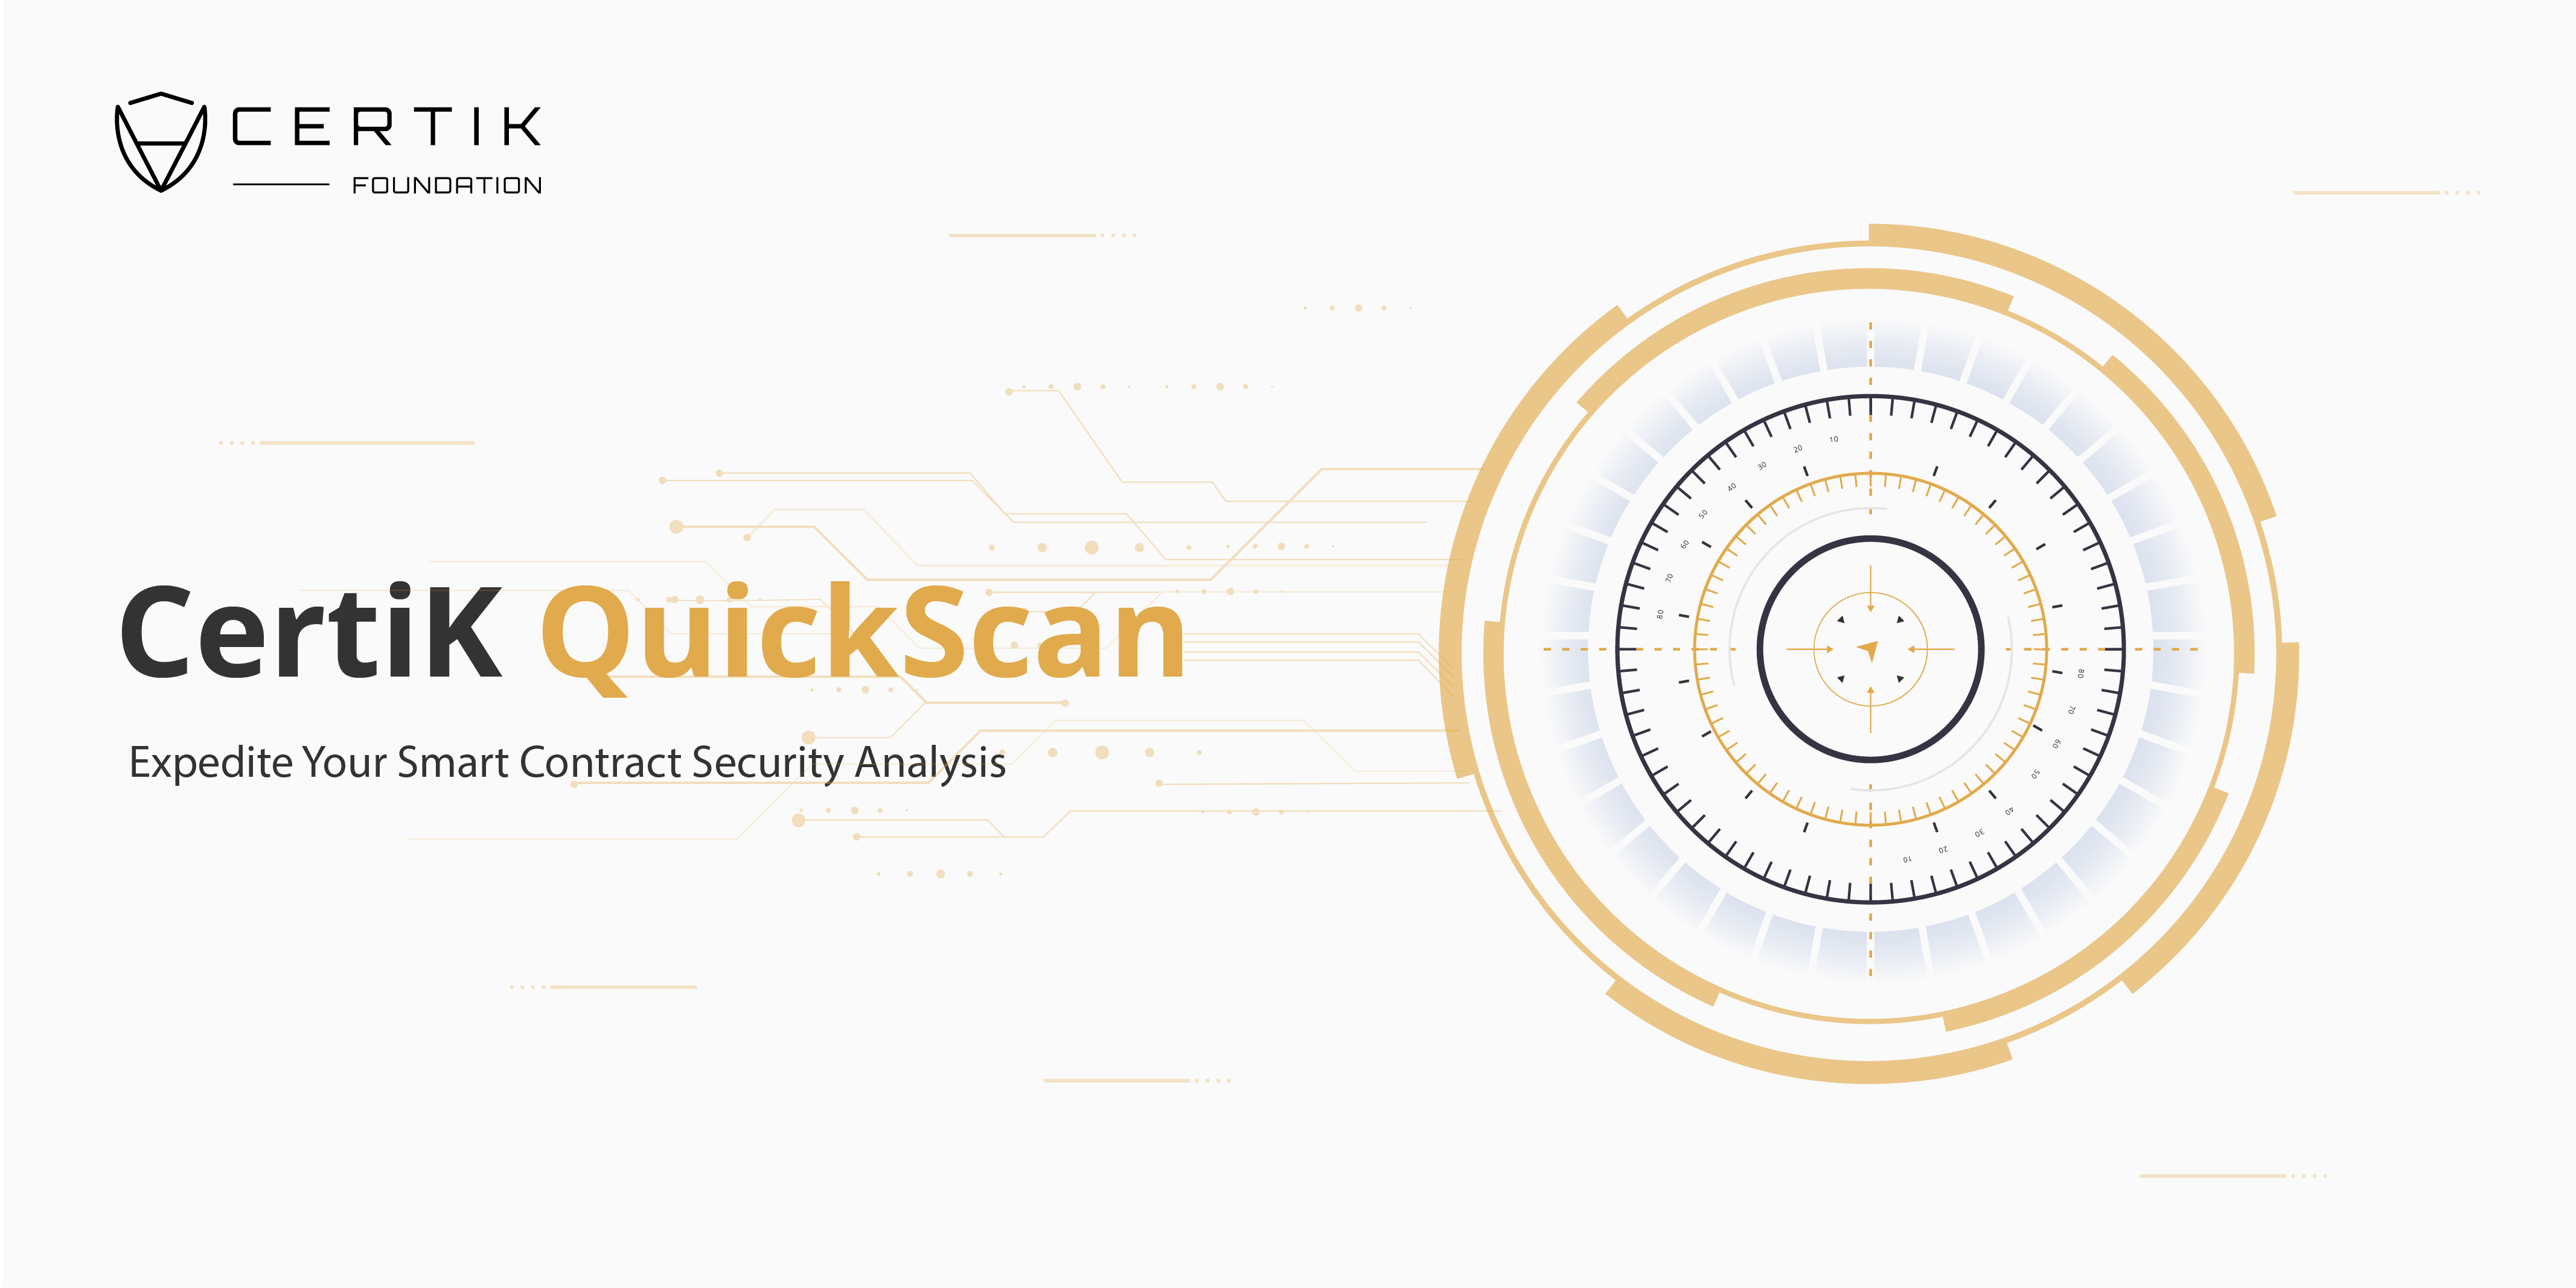 Expedite Your Smart Contract with CertiK QuickScan